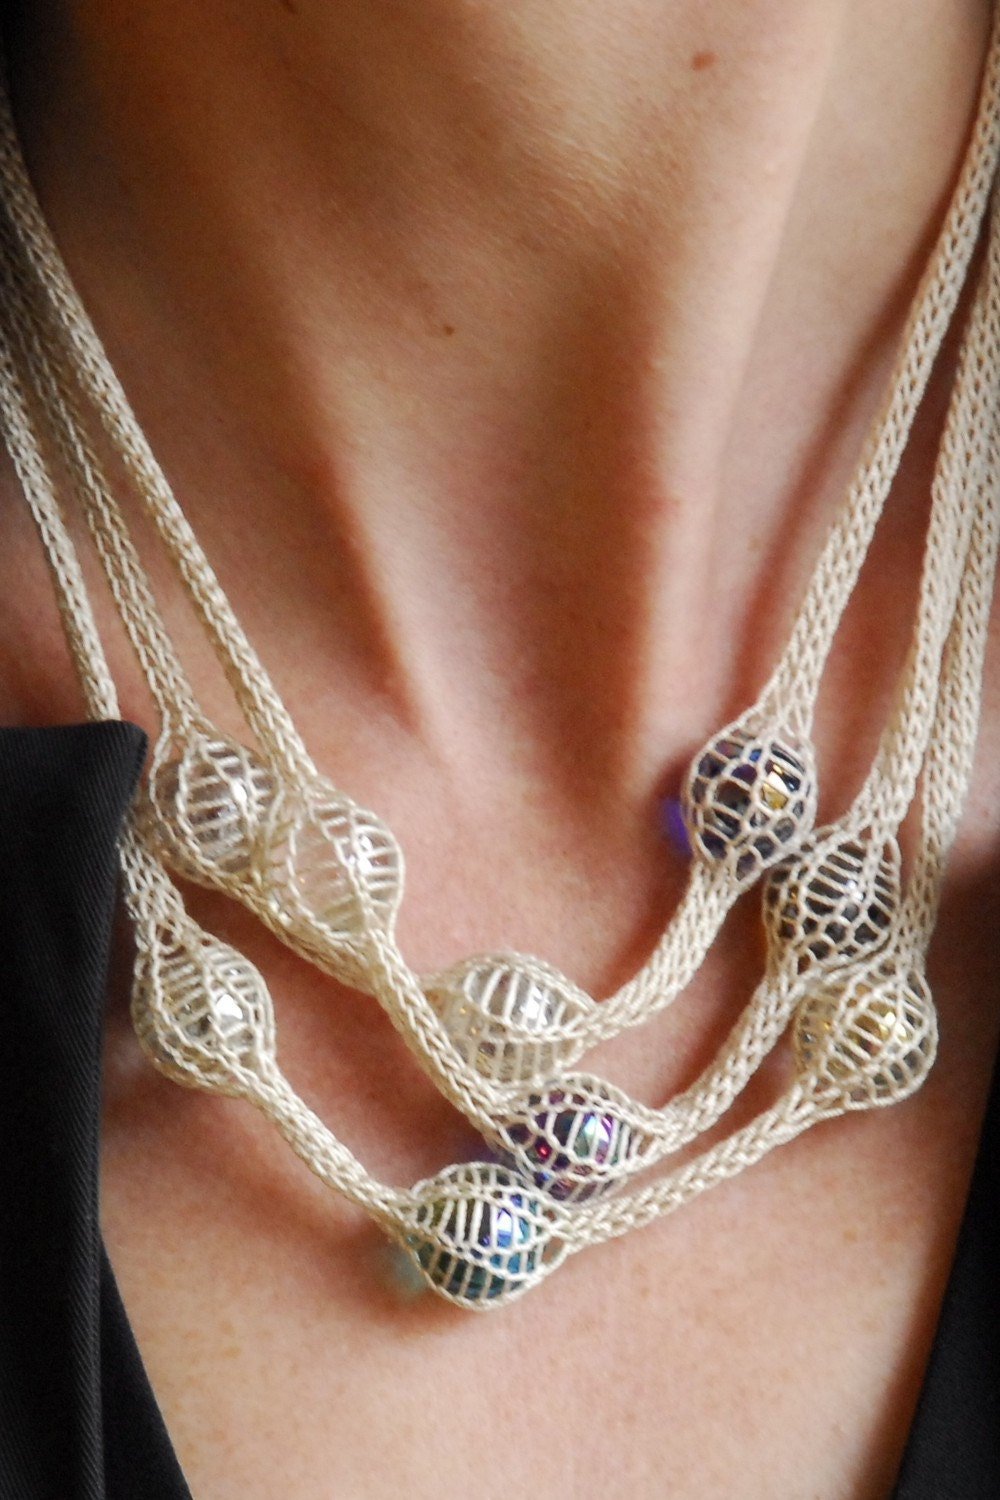 French Knitting Jewellery Tutorials : Etsy knitted necklace with marbles caught in a knitting